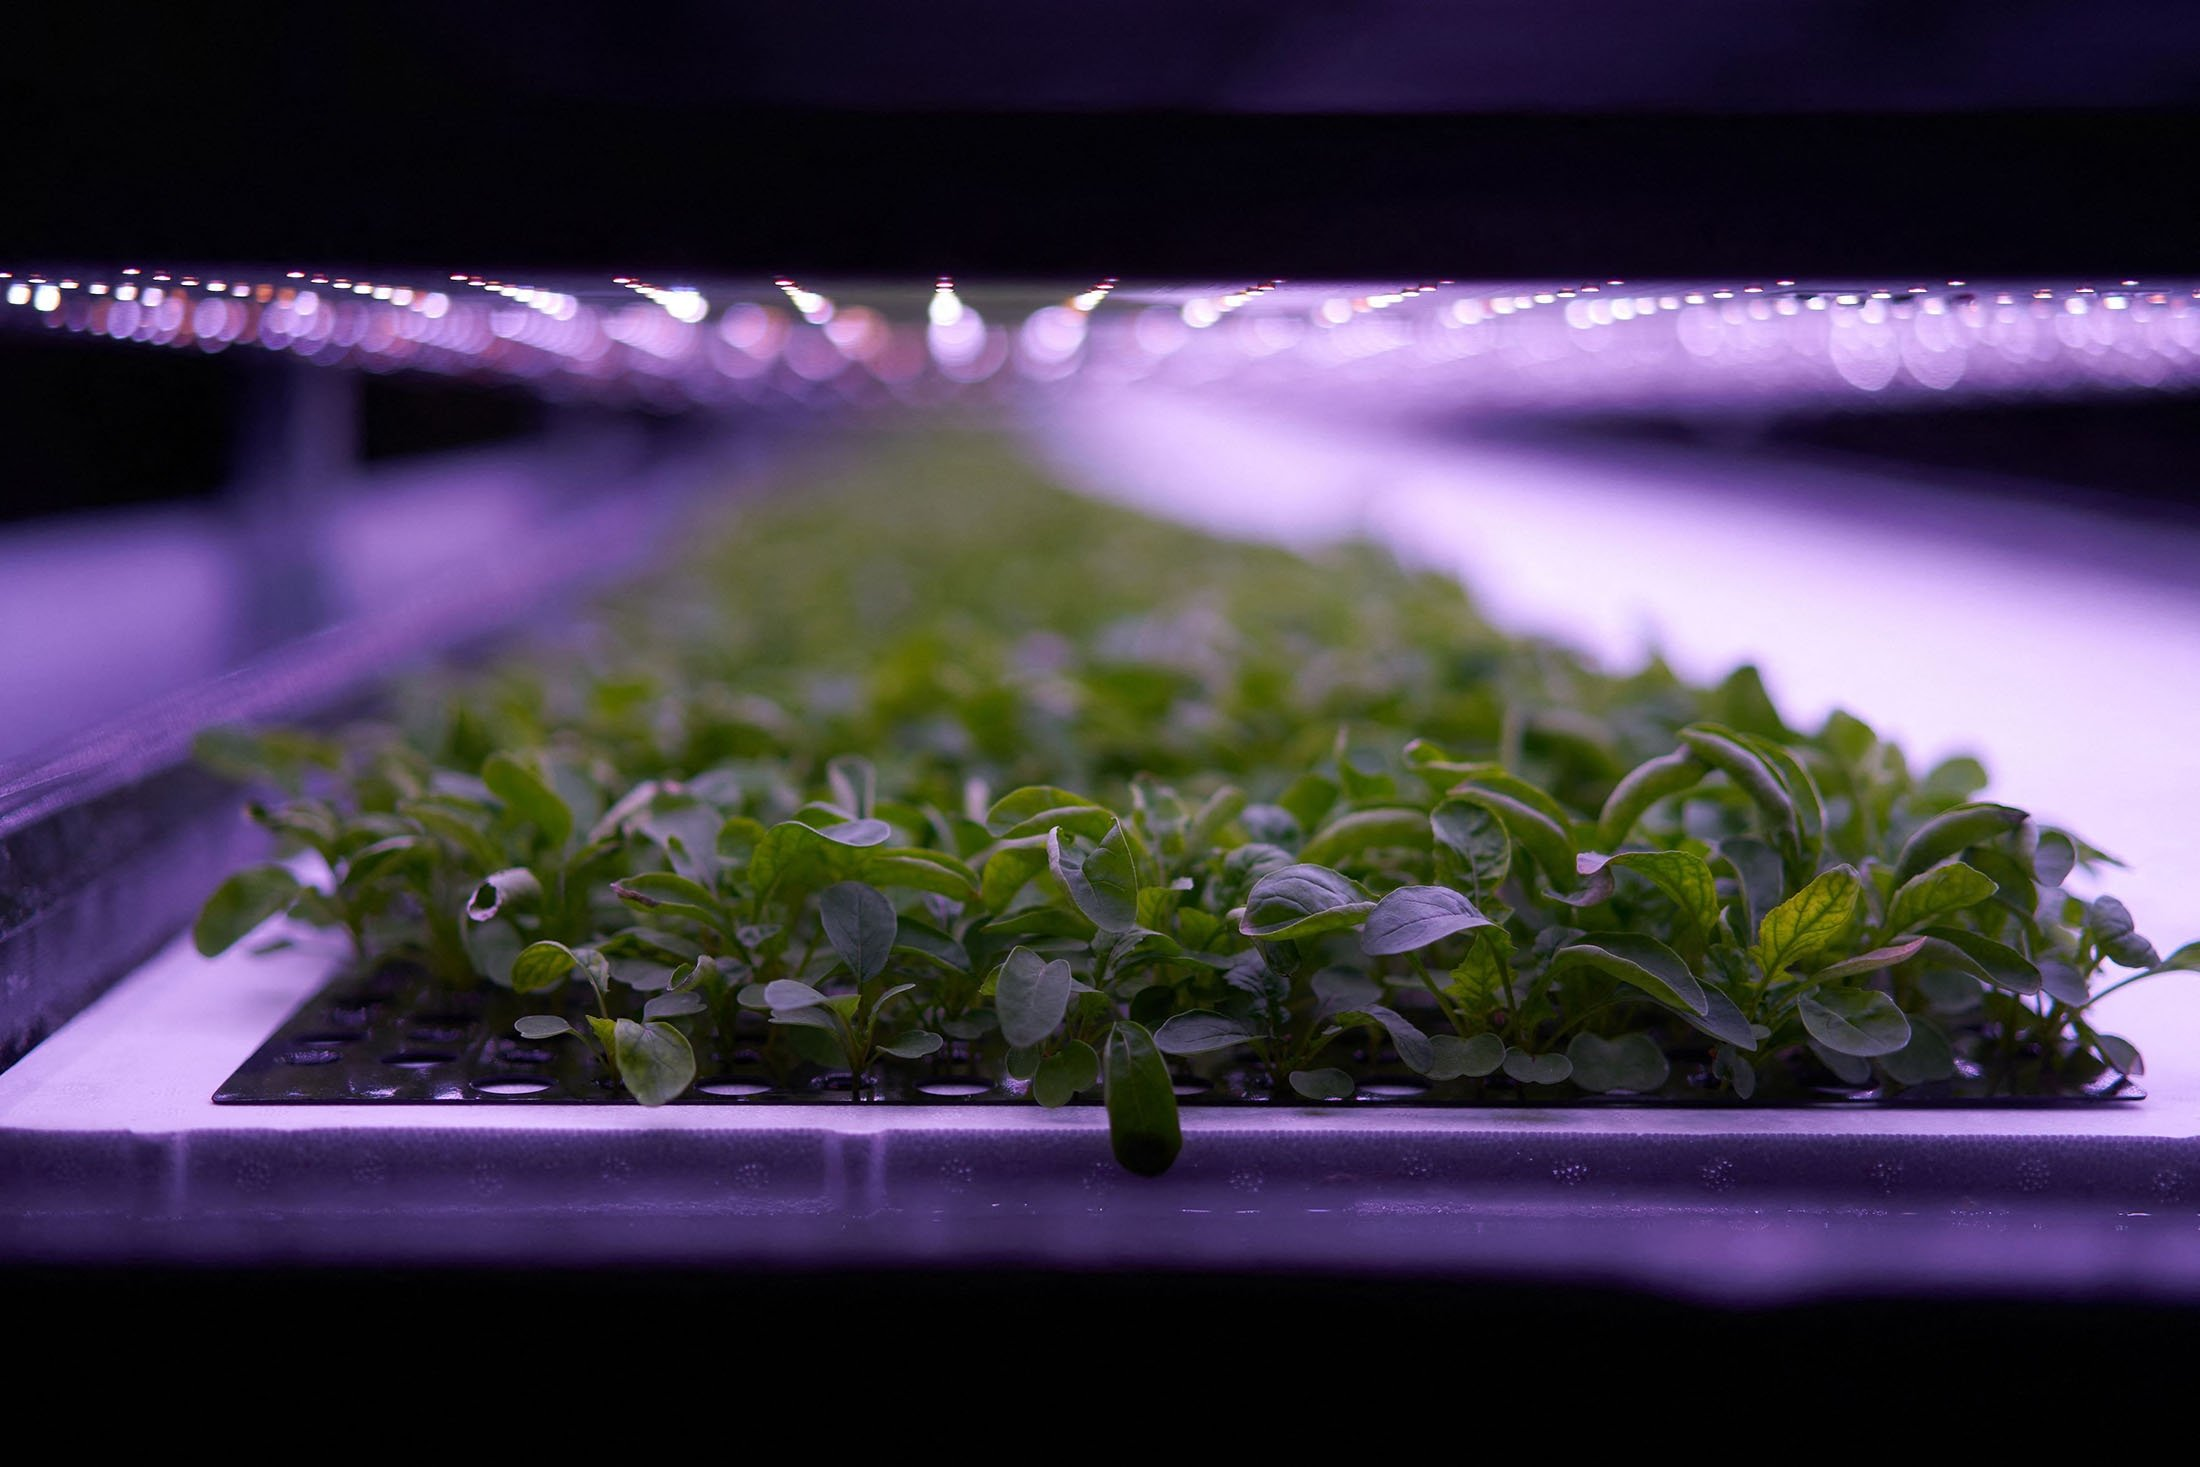 """Plants cultivated at the vertical plant farm """"Nordic Harvest"""" based in Taastrup, a suburb west of Copenhagen, Denmark, Nov. 20, 2020. (AFP Photo)"""